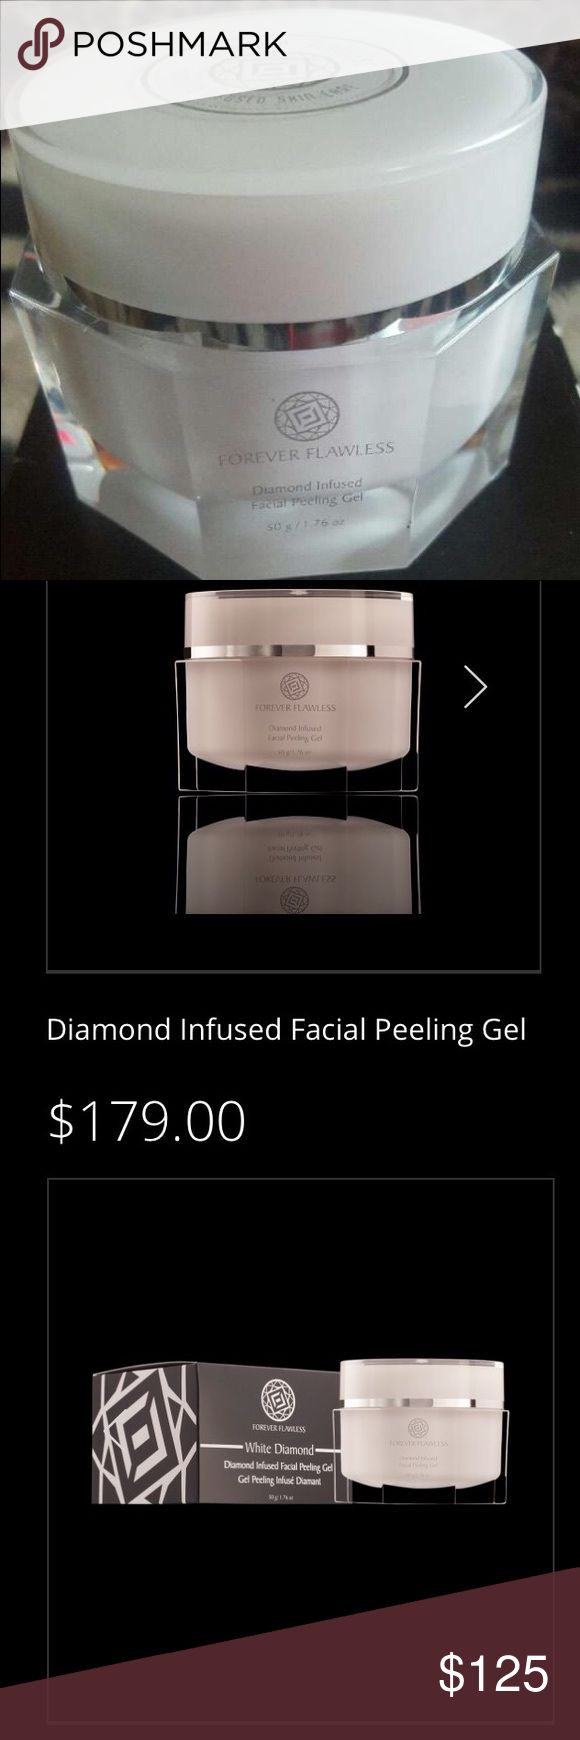 💎DIAMOND INFUSED FACIAL PEELING GEL Diamond Facial Peel is a gentle,effective exfoliating and peeling treatment for ur face. Exfoliating & peeling are essential to skin care routine because pore-clogging residue that can lead to acne, inflammation,& othe